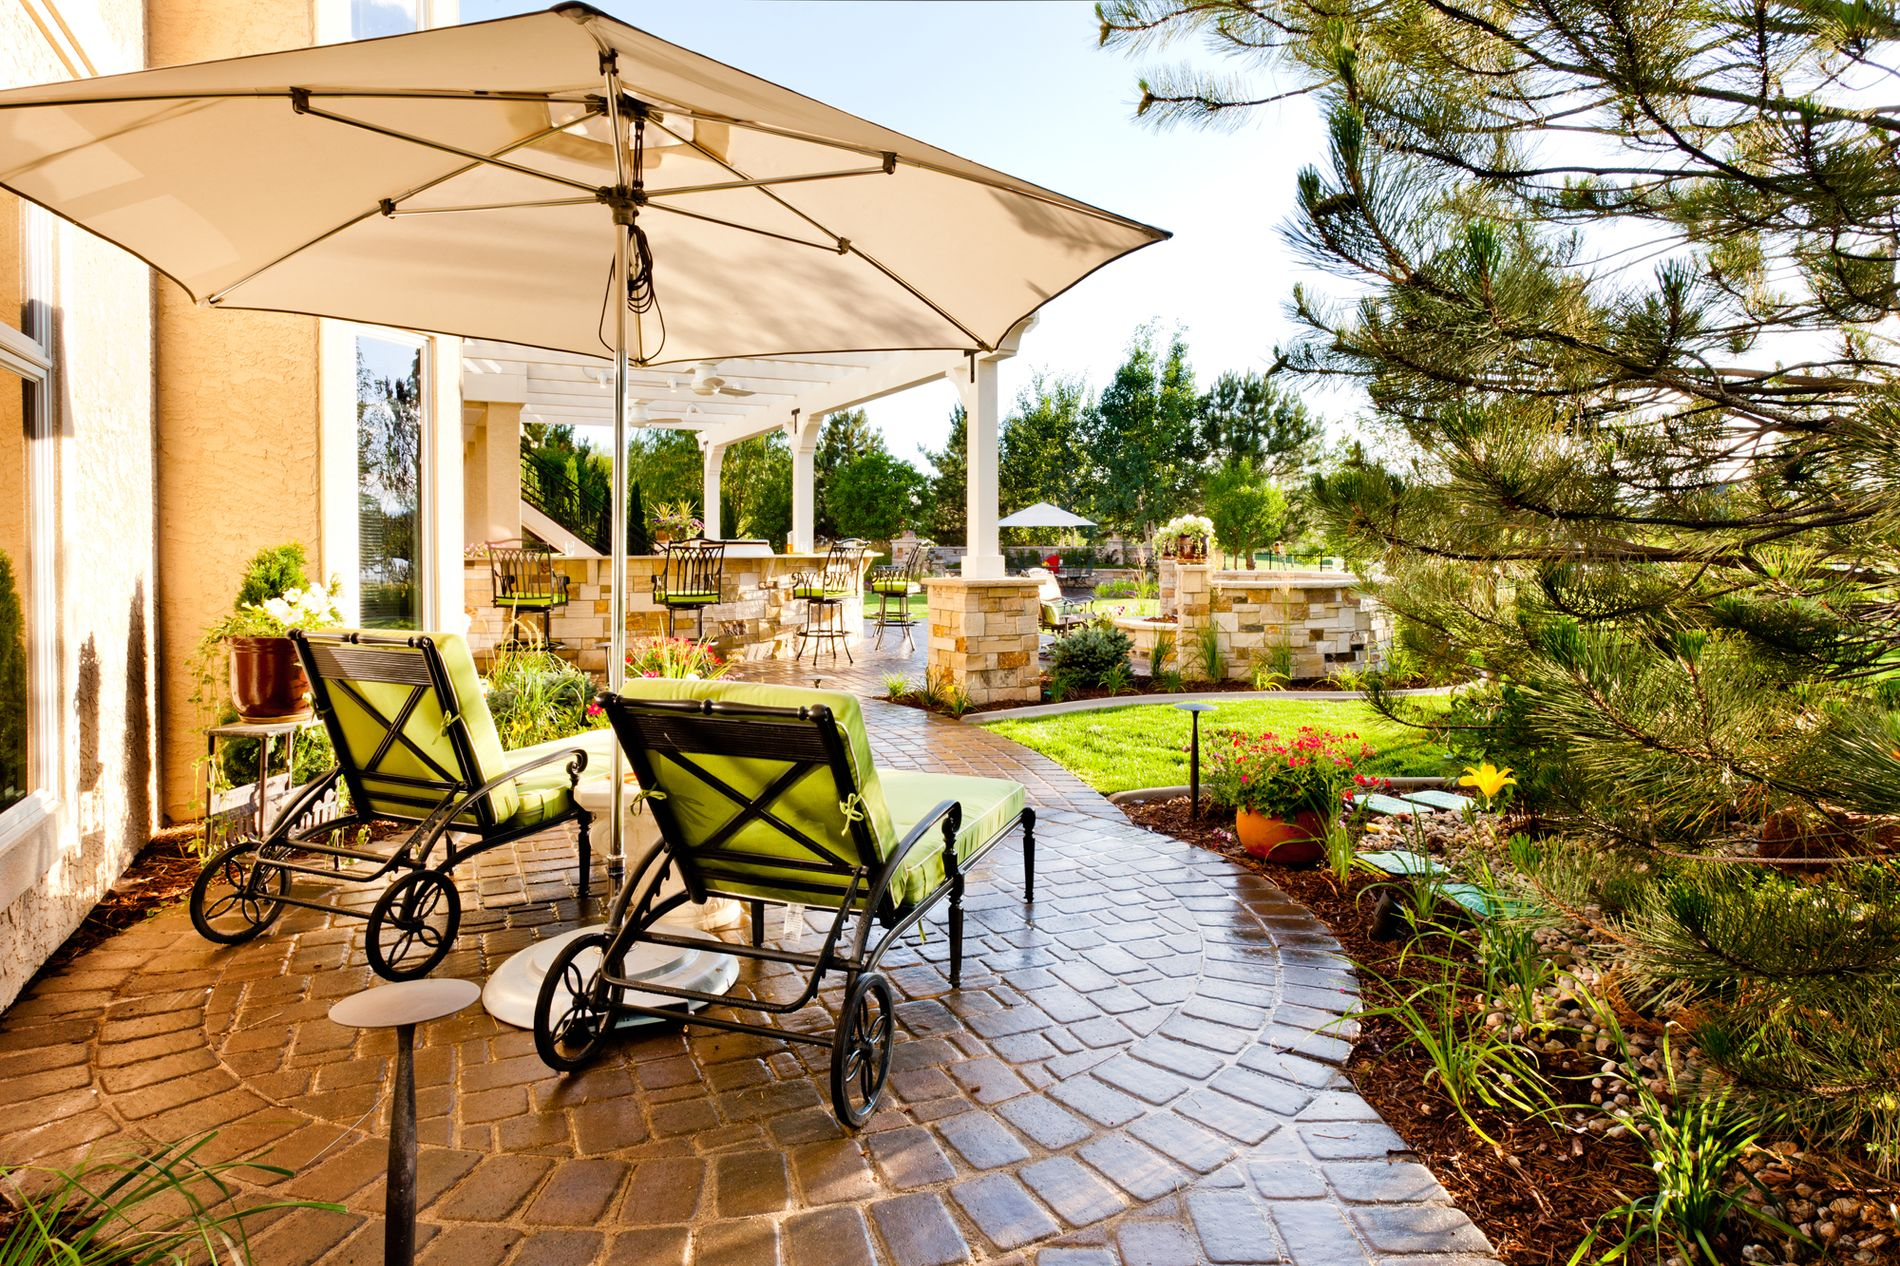 Paver Patio Outdoor Living Space